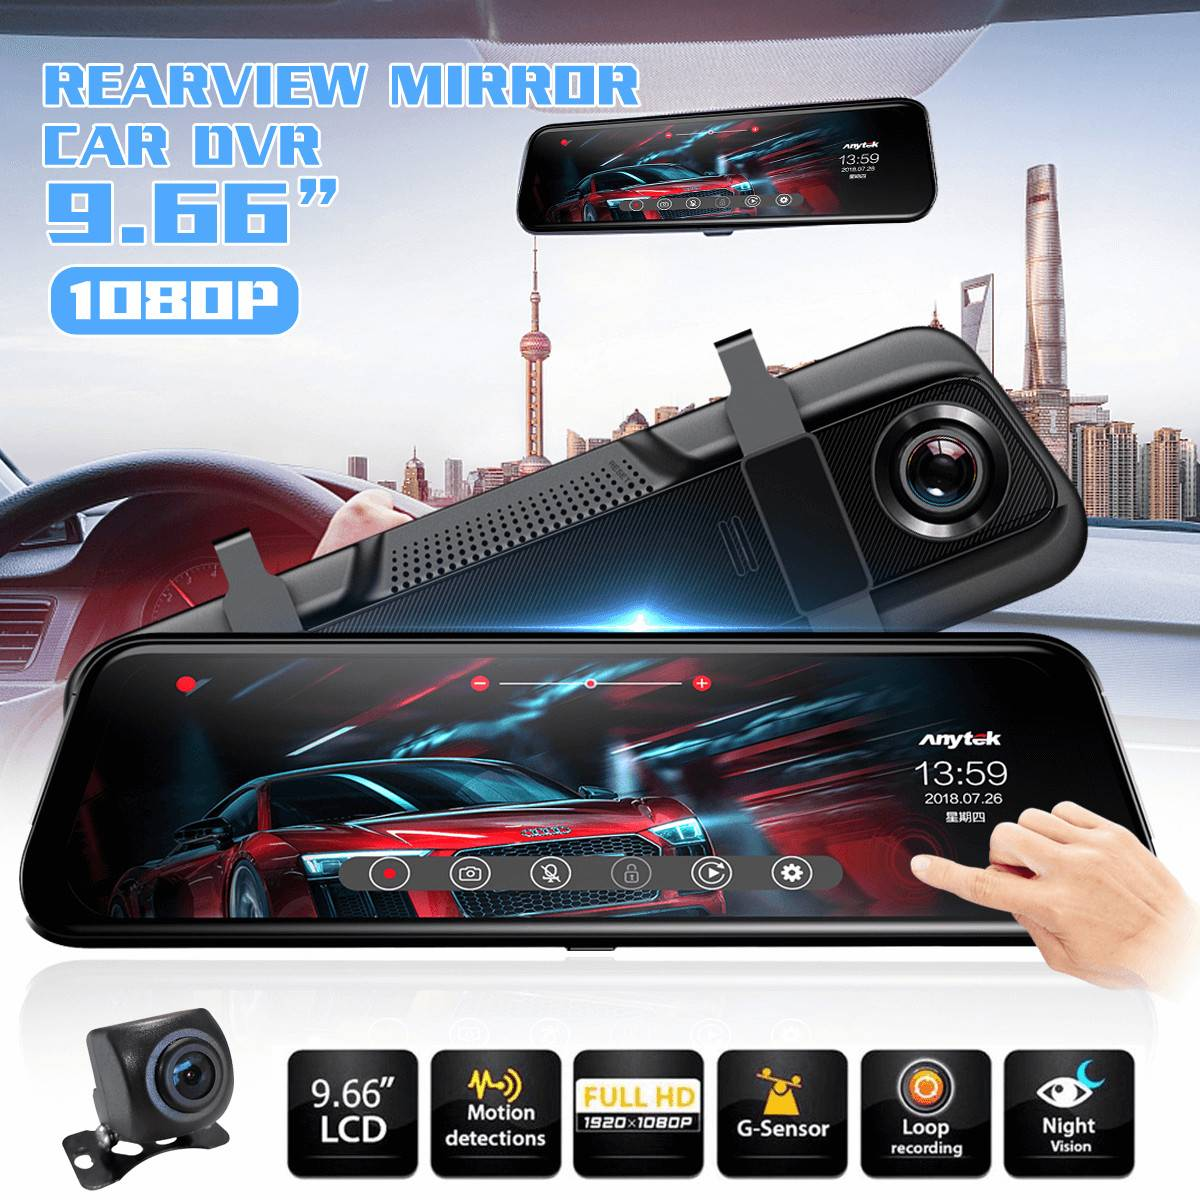 9.66 inch 1080P HD Auto Rearview Mirror Car Video Recorder DVR Dash Camera RearView Media Dual Lens Registrar Curved Screen9.66 inch 1080P HD Auto Rearview Mirror Car Video Recorder DVR Dash Camera RearView Media Dual Lens Registrar Curved Screen